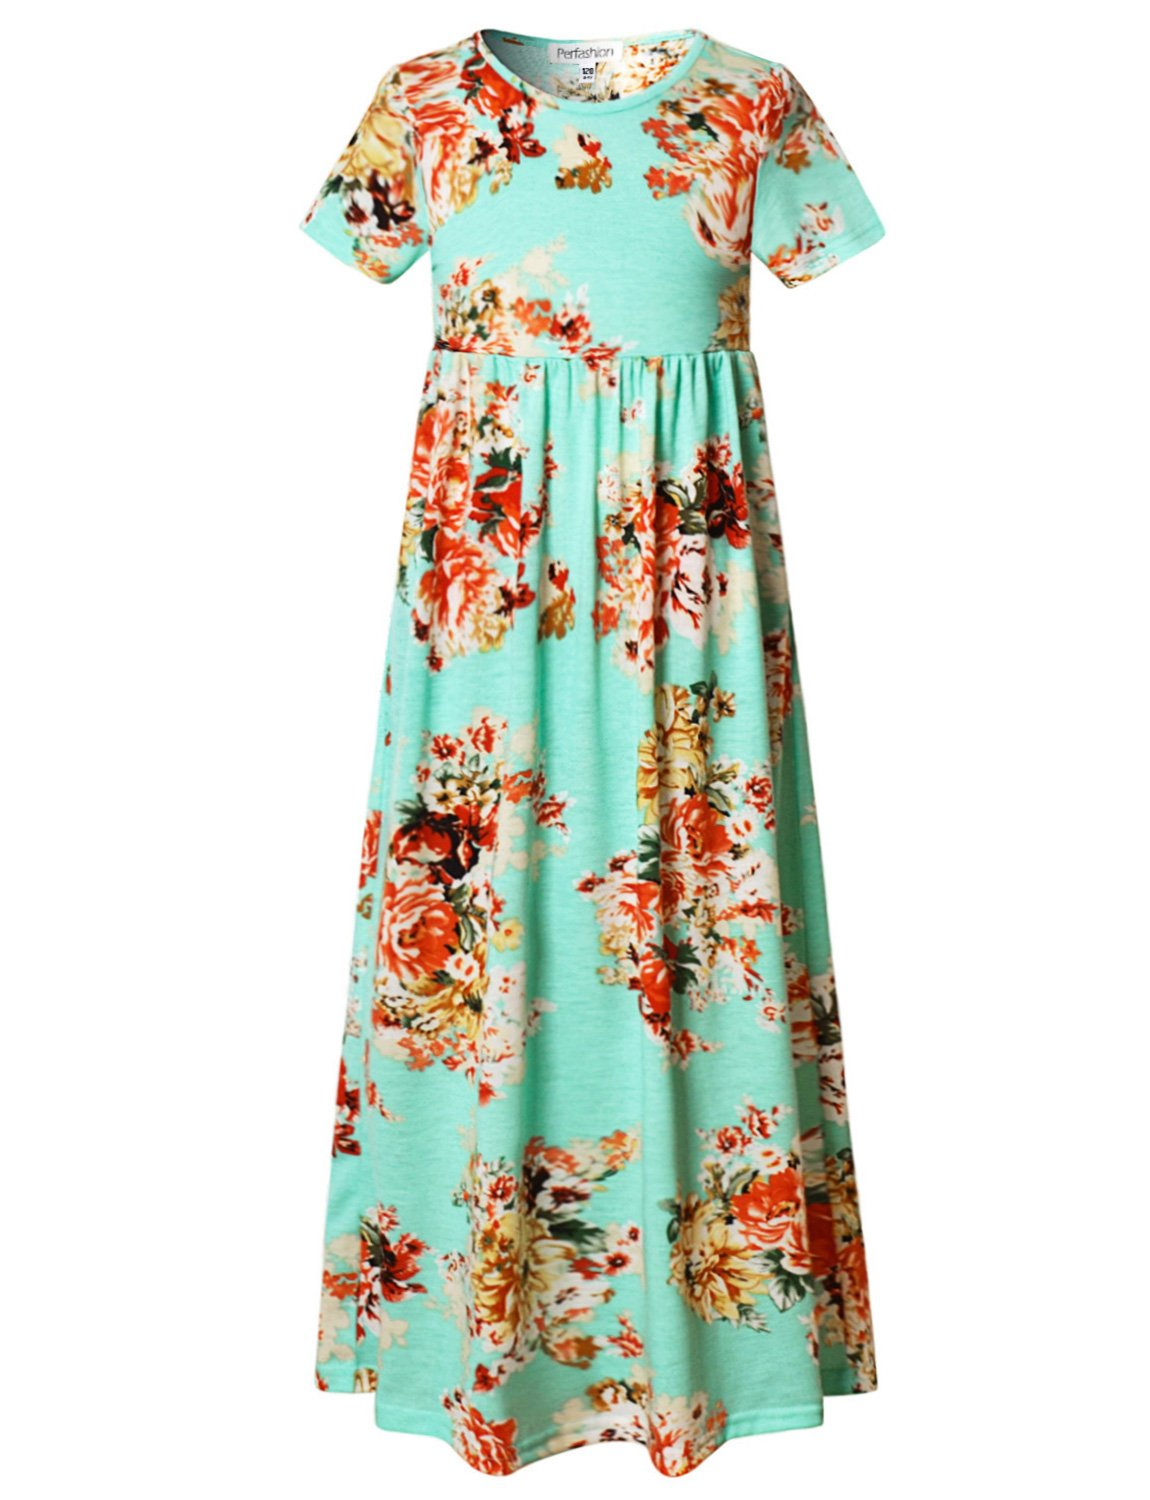 Perfashion Little Girls Floral Print Short Sleeve Summer Casual Maxi Dress, Mint Green Floral, 10-11 Years/Height:57in